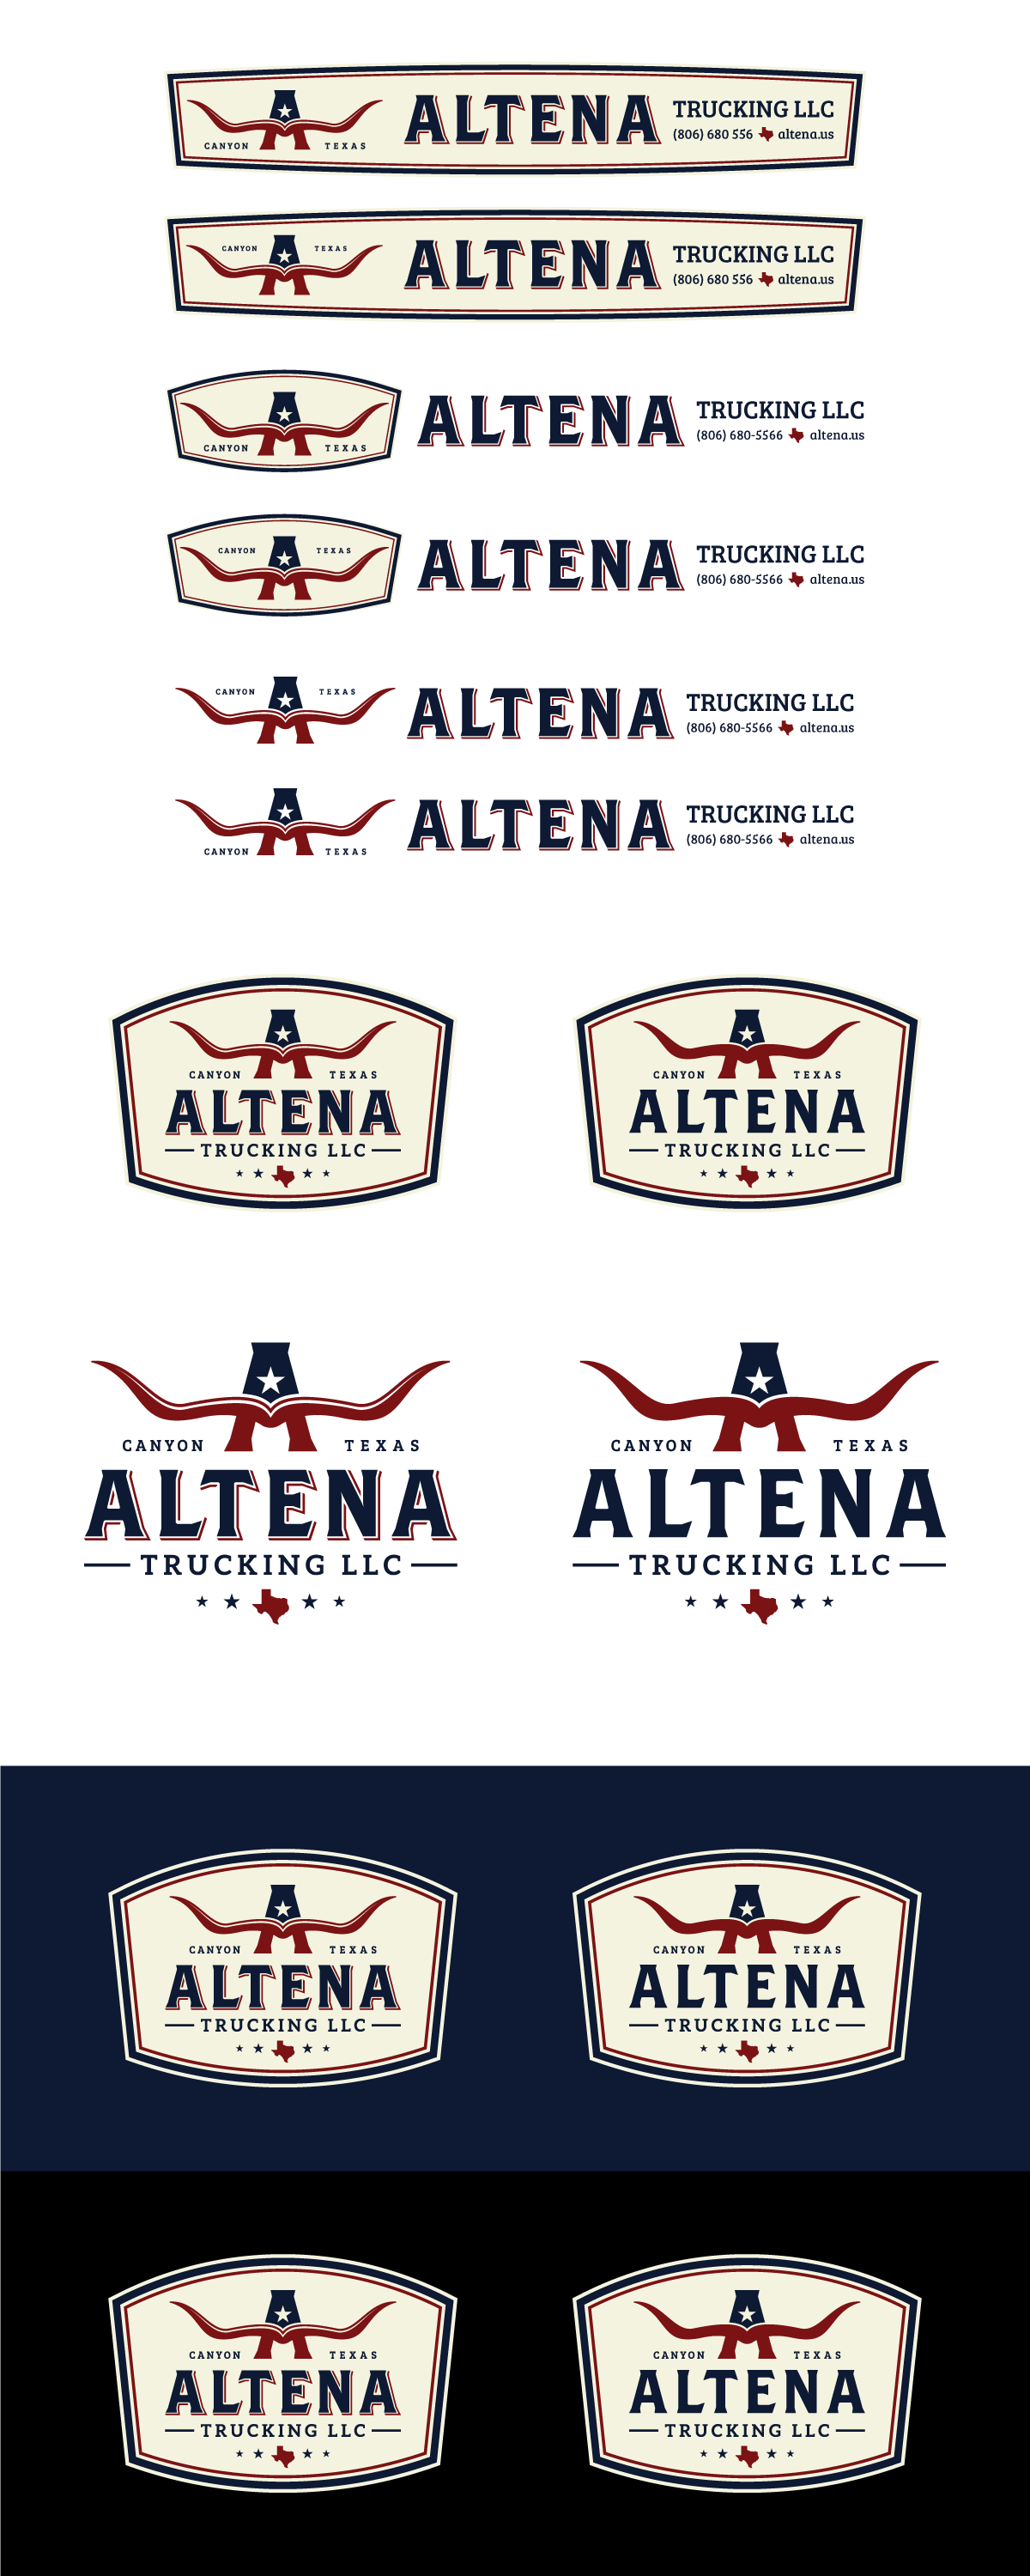 We are looking for a logo to represent our family brand and make it easily recognizable.